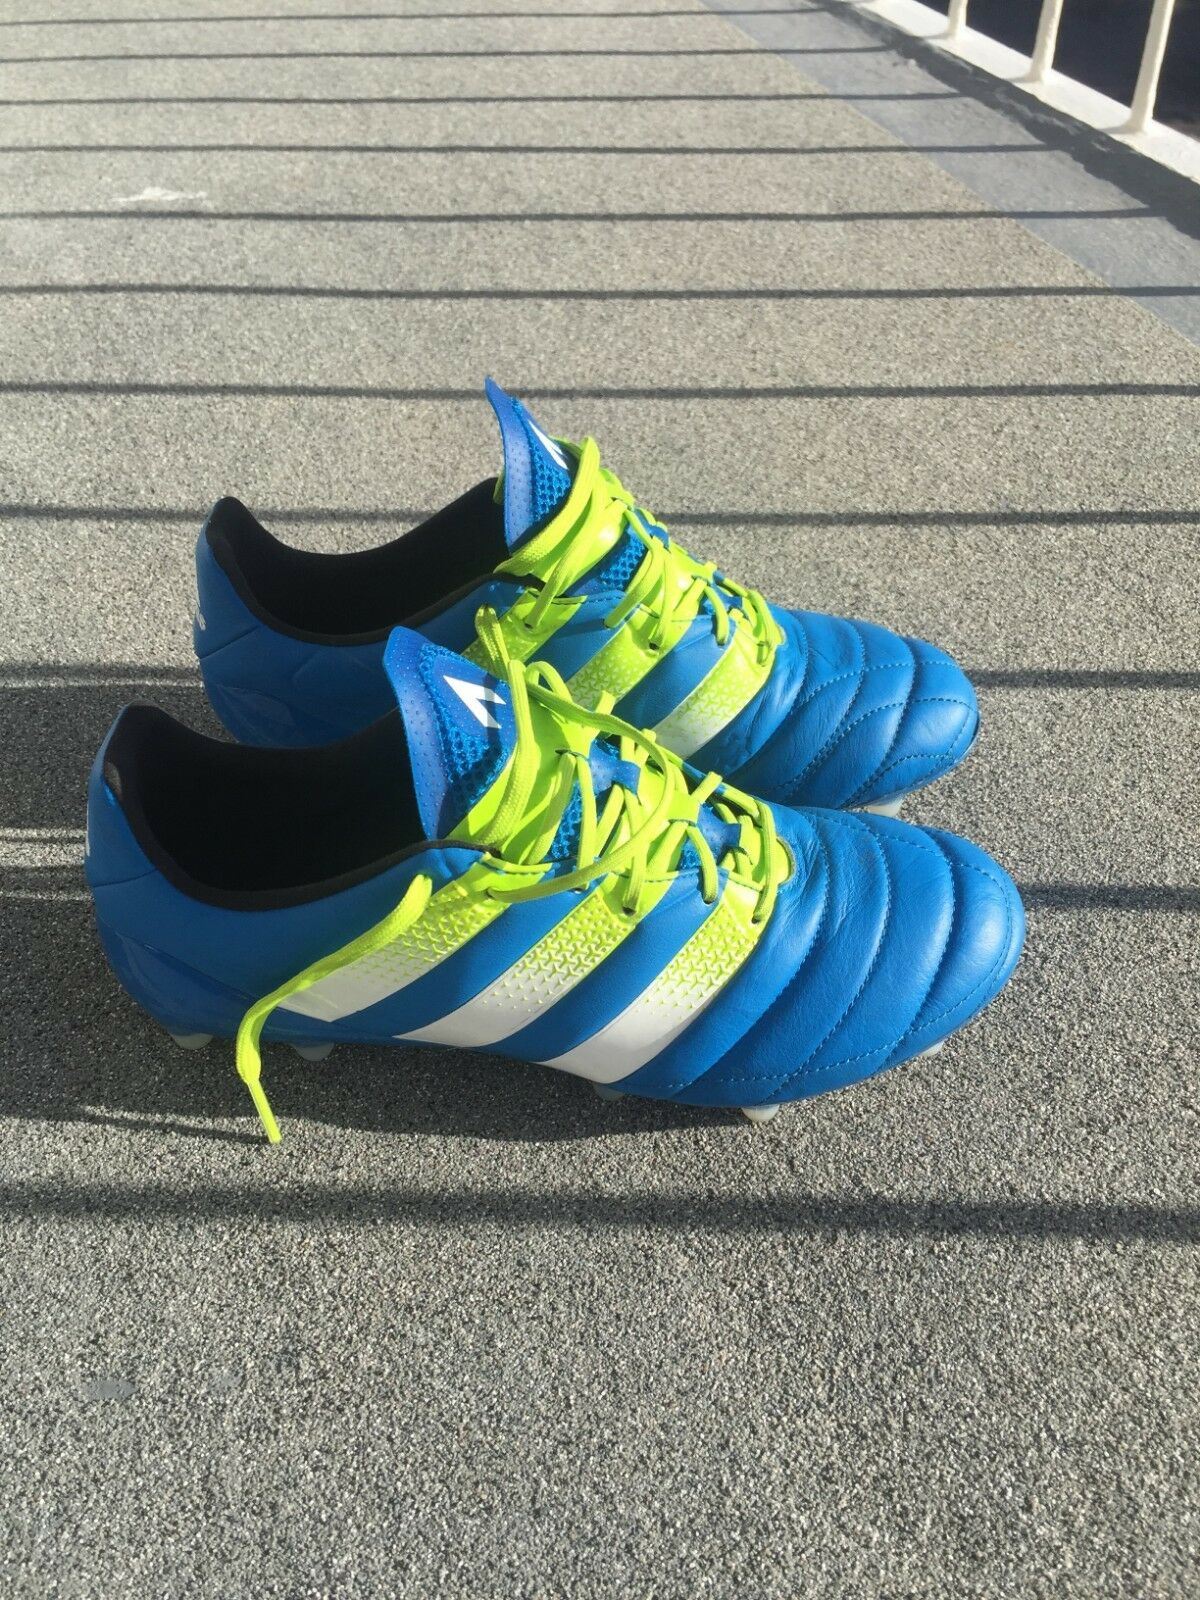 Adidas Leather Ace 16.1 SG Football Boots Size 7.5